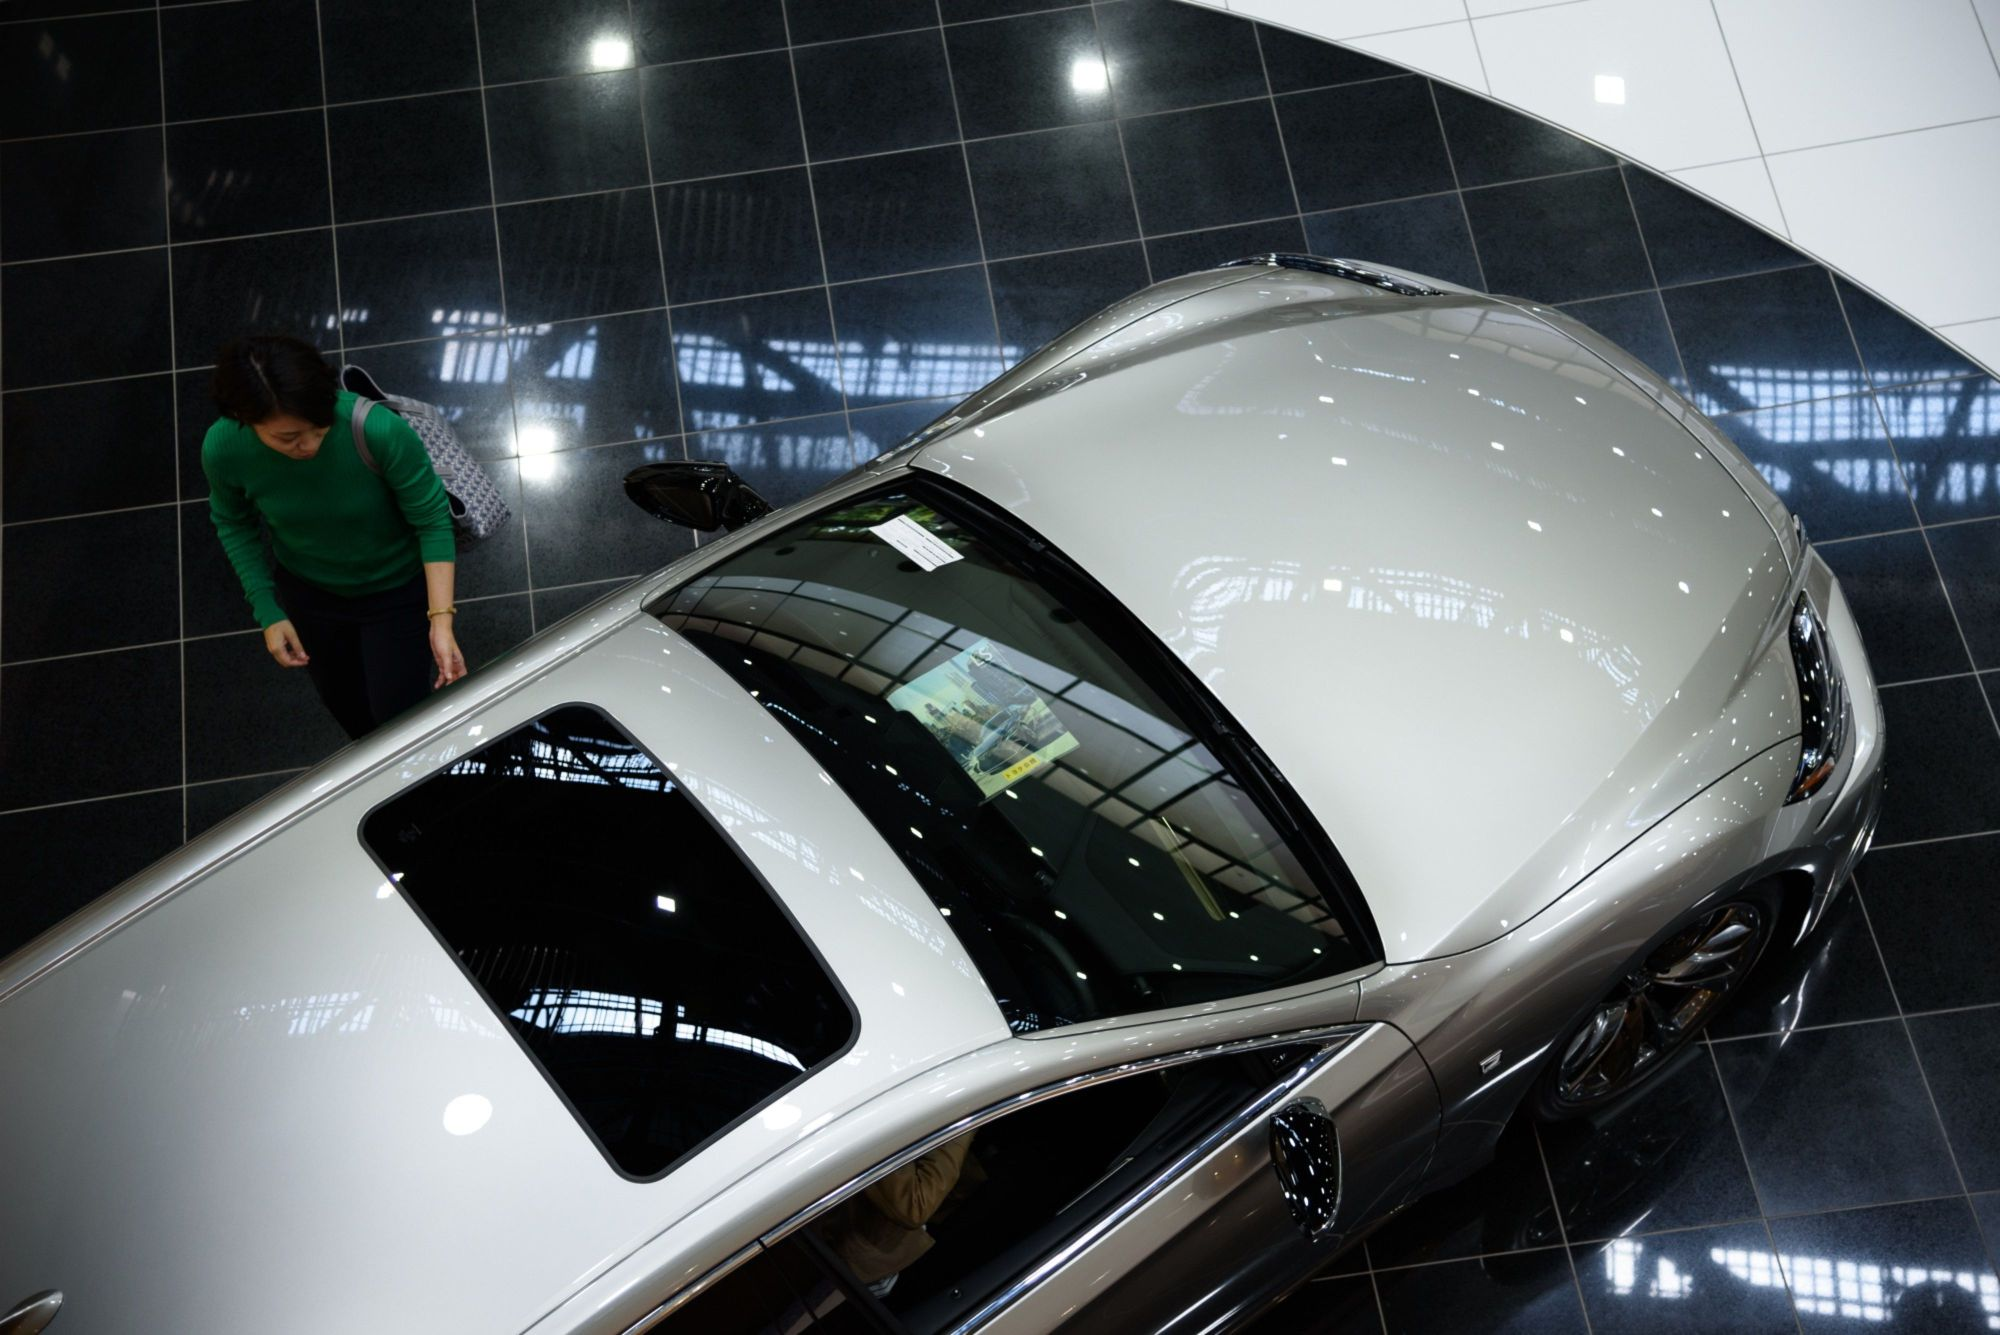 A visitor looks at a Toyota Motor Corp. Lexus LS 500h at the company's showroom in Toyota, Aichi Prefecture, in June. Toyota and weather information provider Weathernews Inc. have started tests to improve the accuracy of rain forecasts by using real-time data from windshield wipers on networked cars. | BLOOMBERG